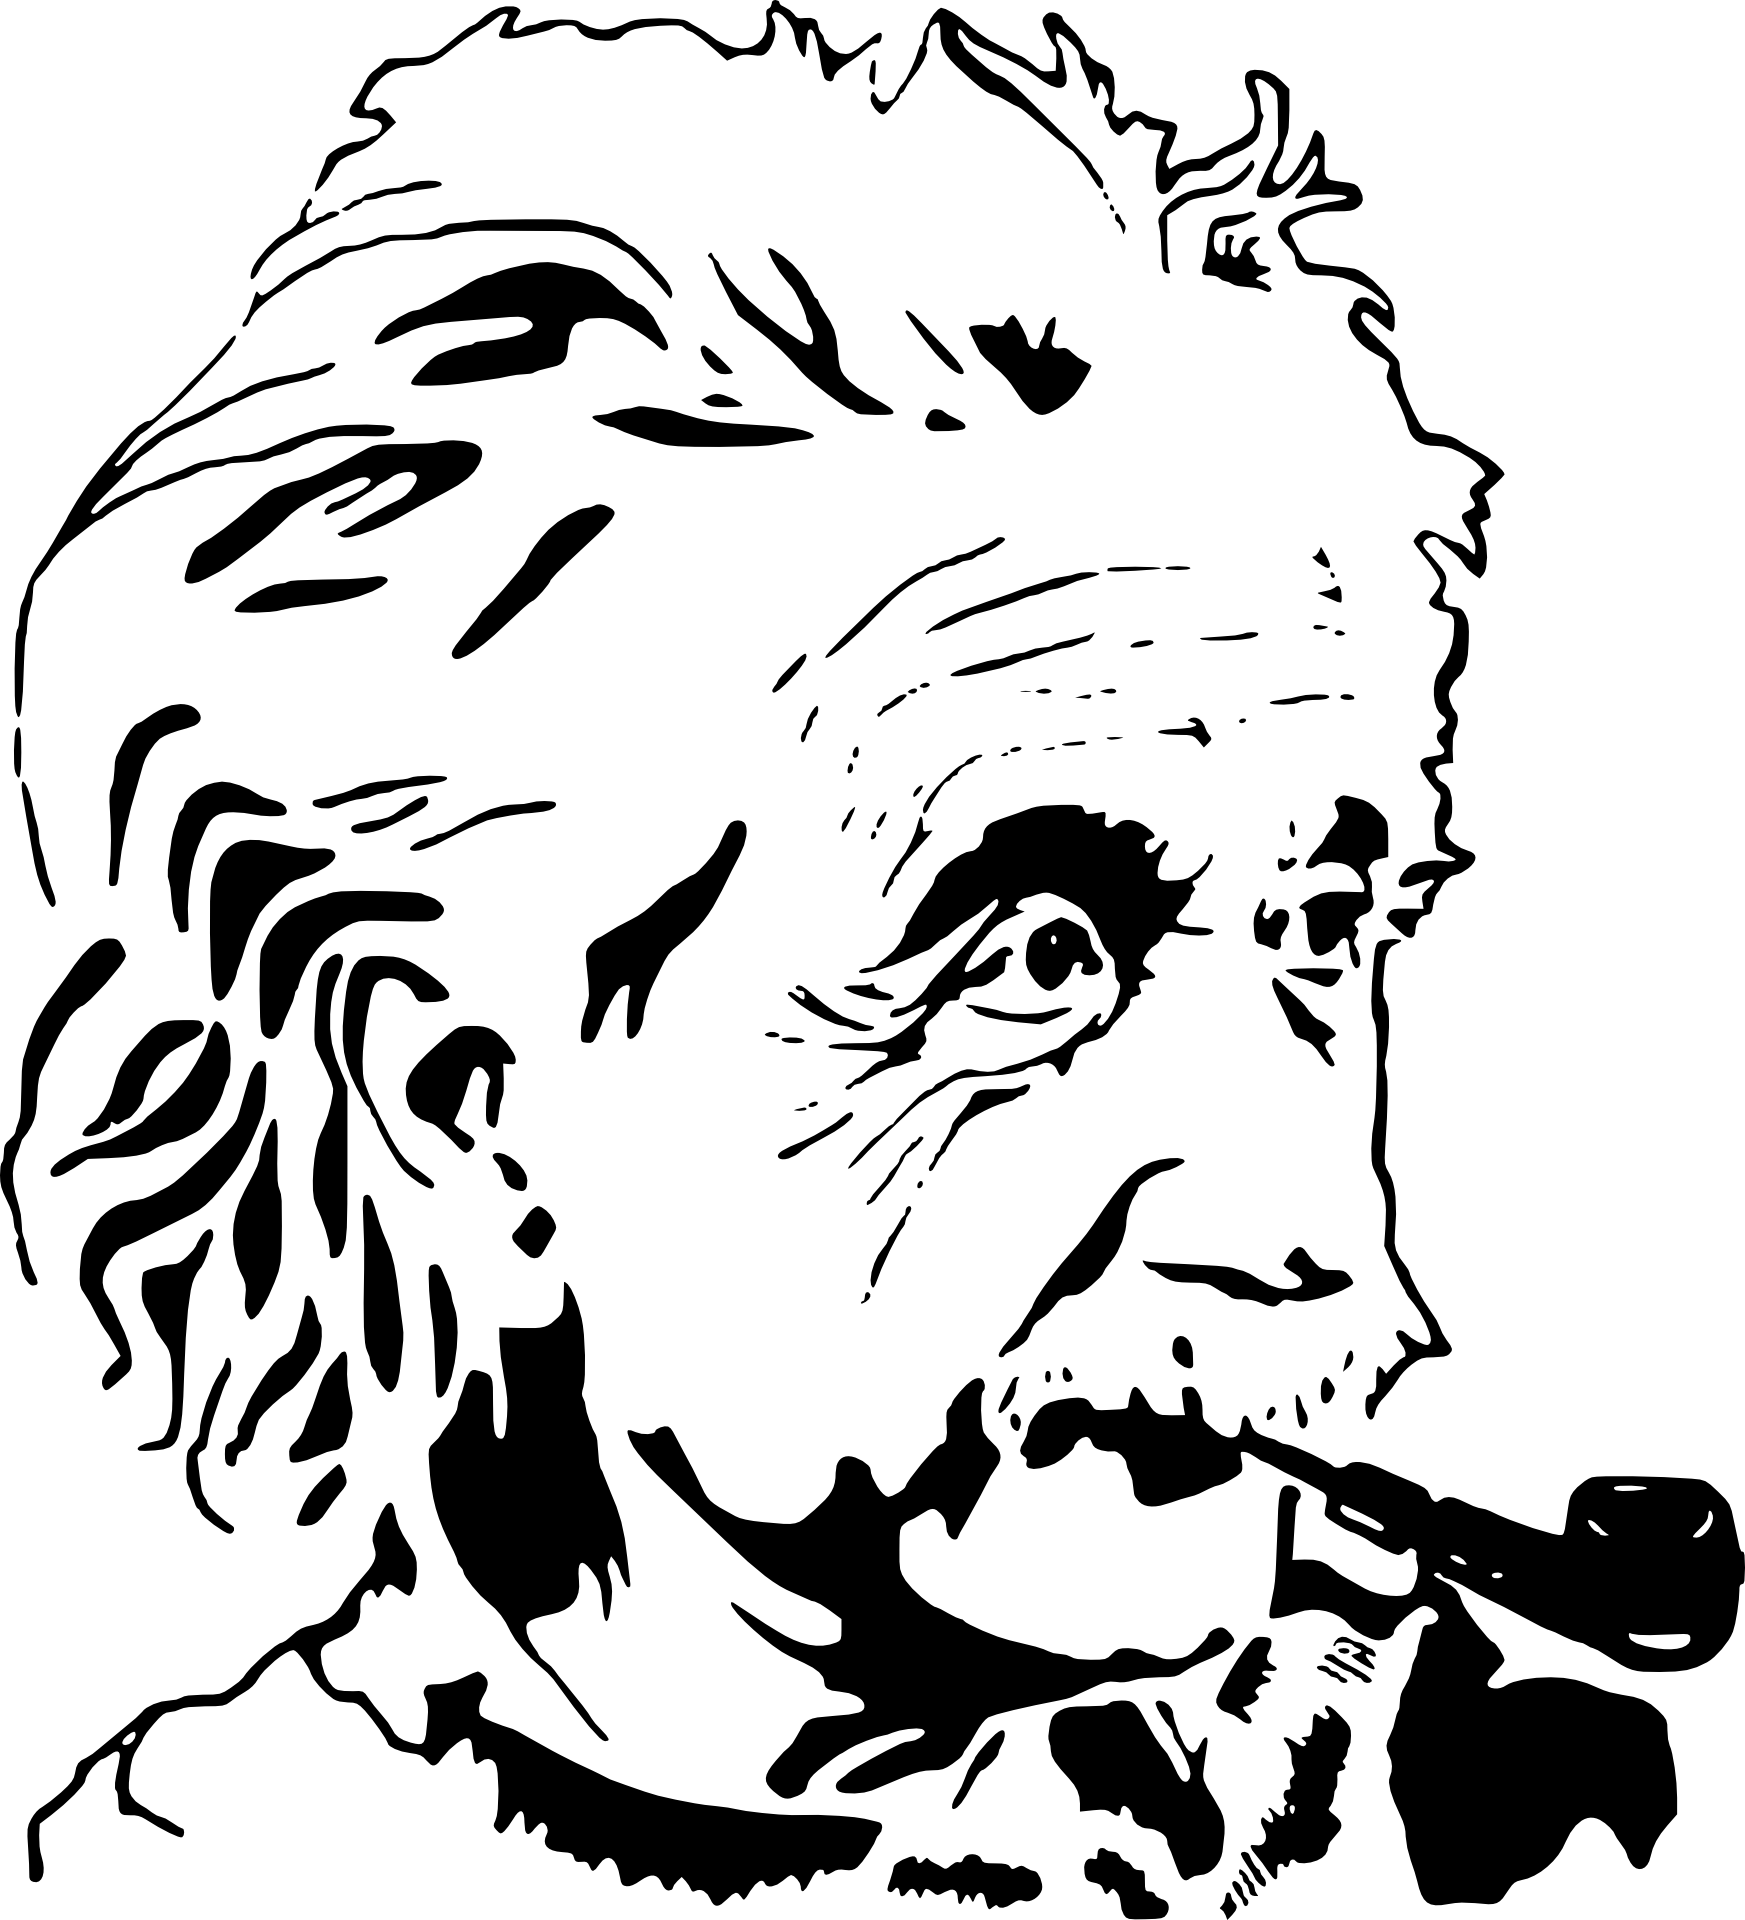 Einstein clipart college math. Quotes by albert einsteinriddle